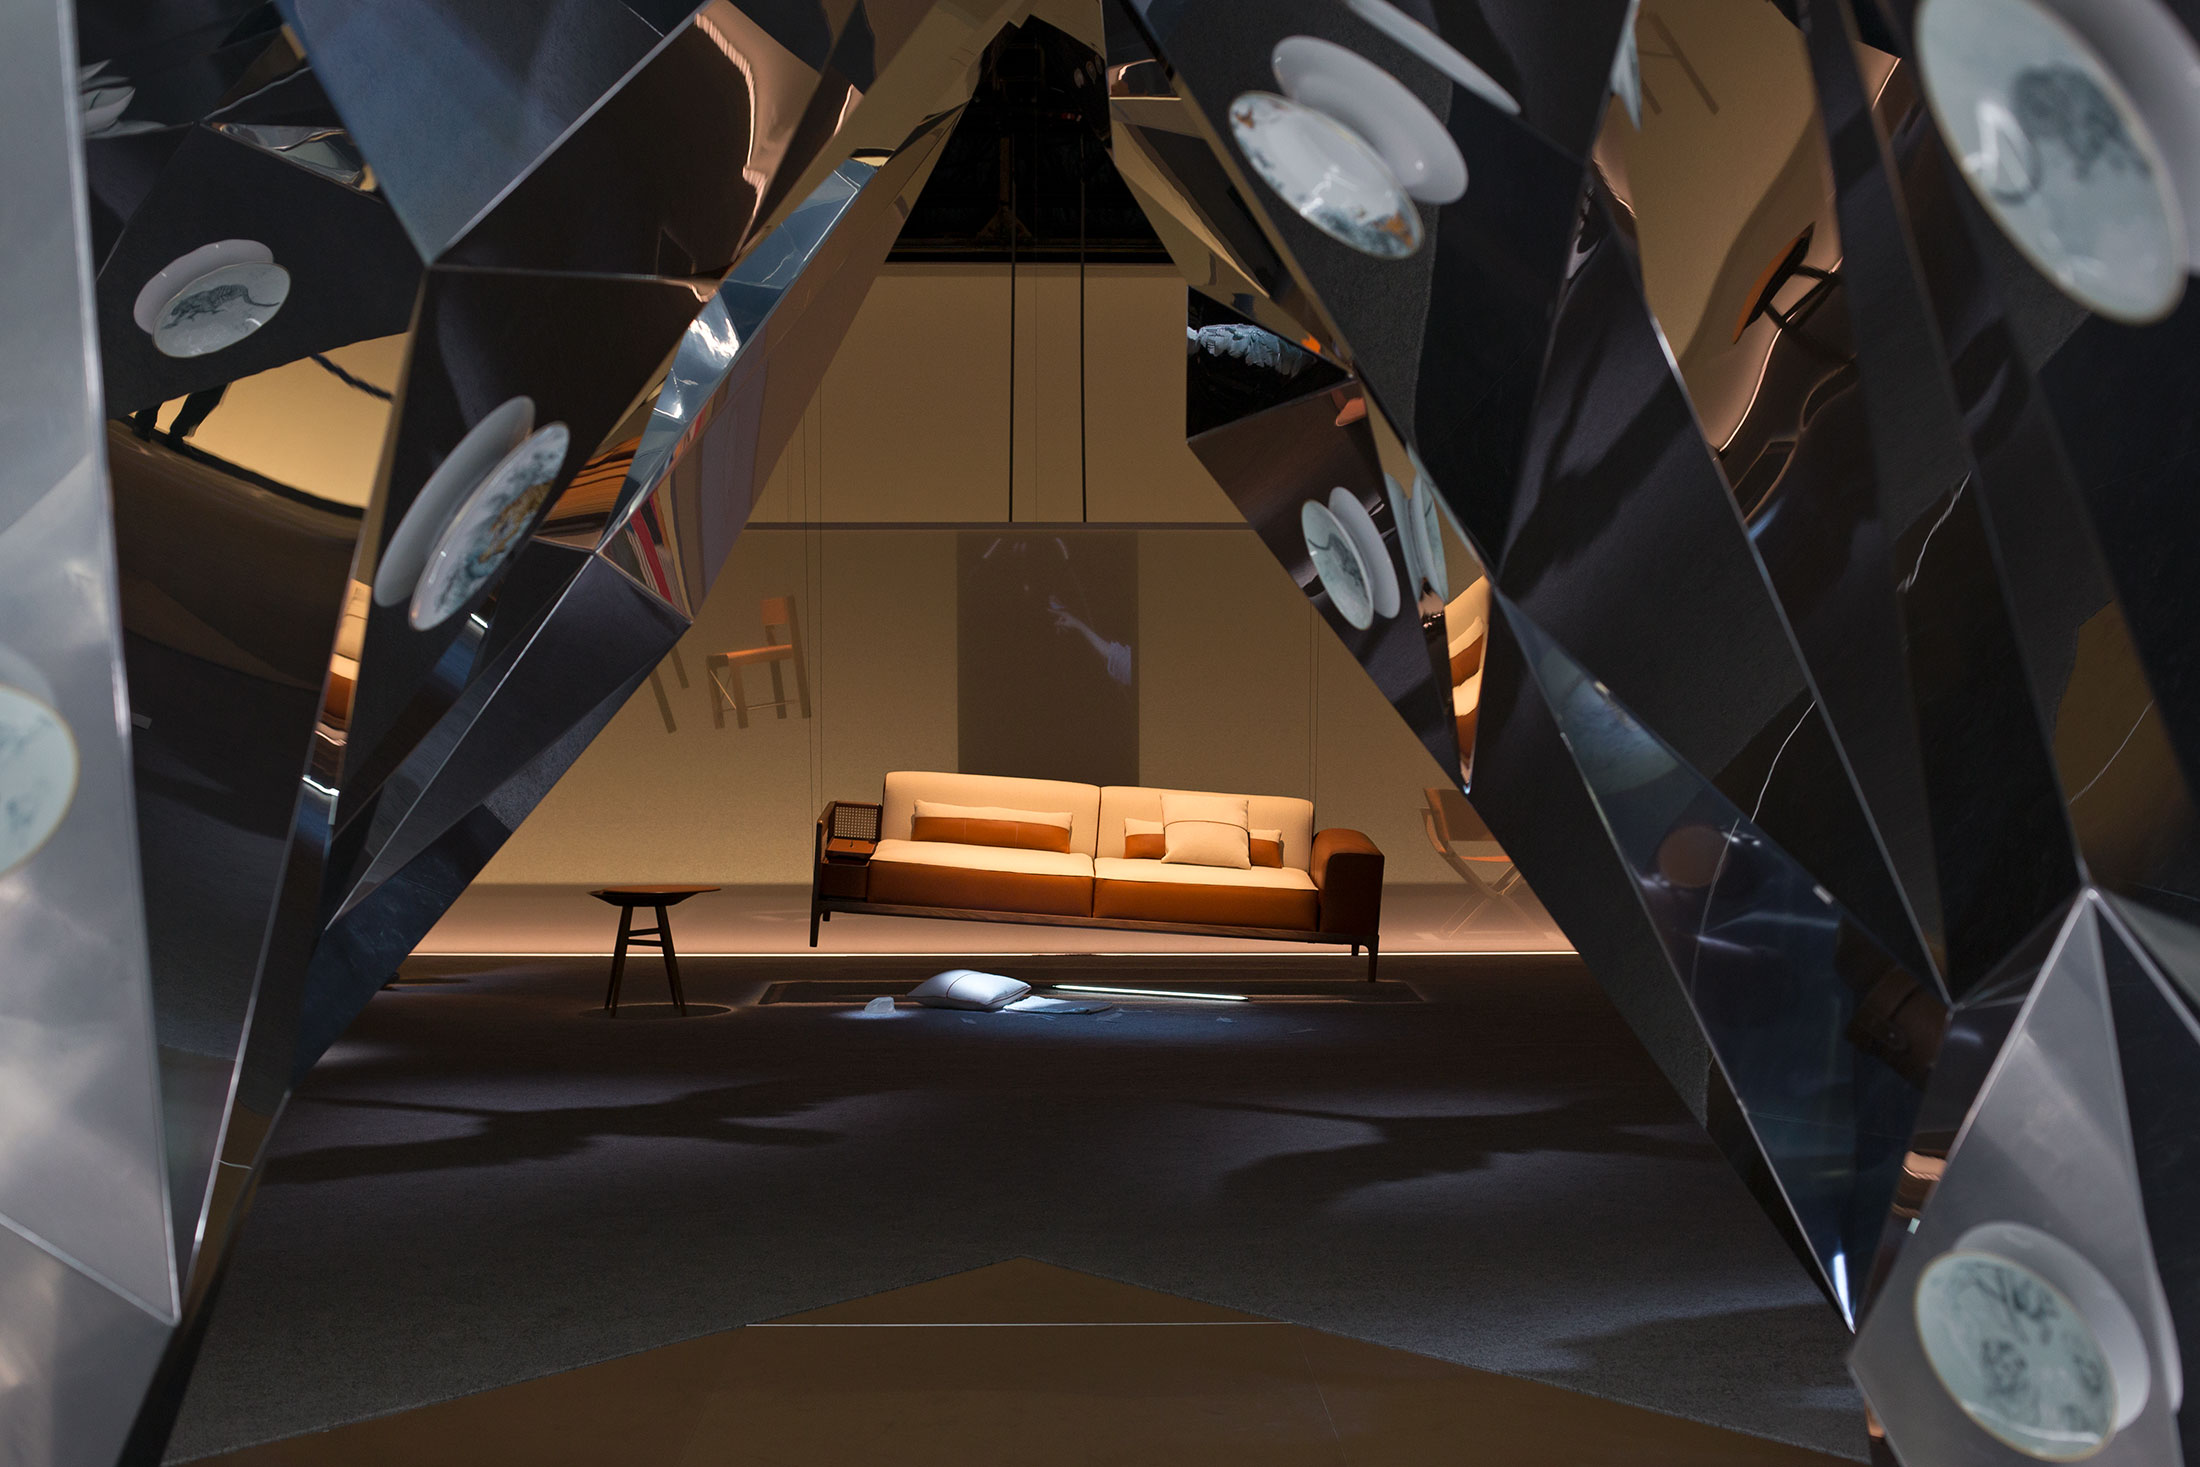 """The Sellier sofa, designed by Noé Duchaufour-Lawrance, at the entrance of """"Here Elsewhere"""" by Robert Wilson."""